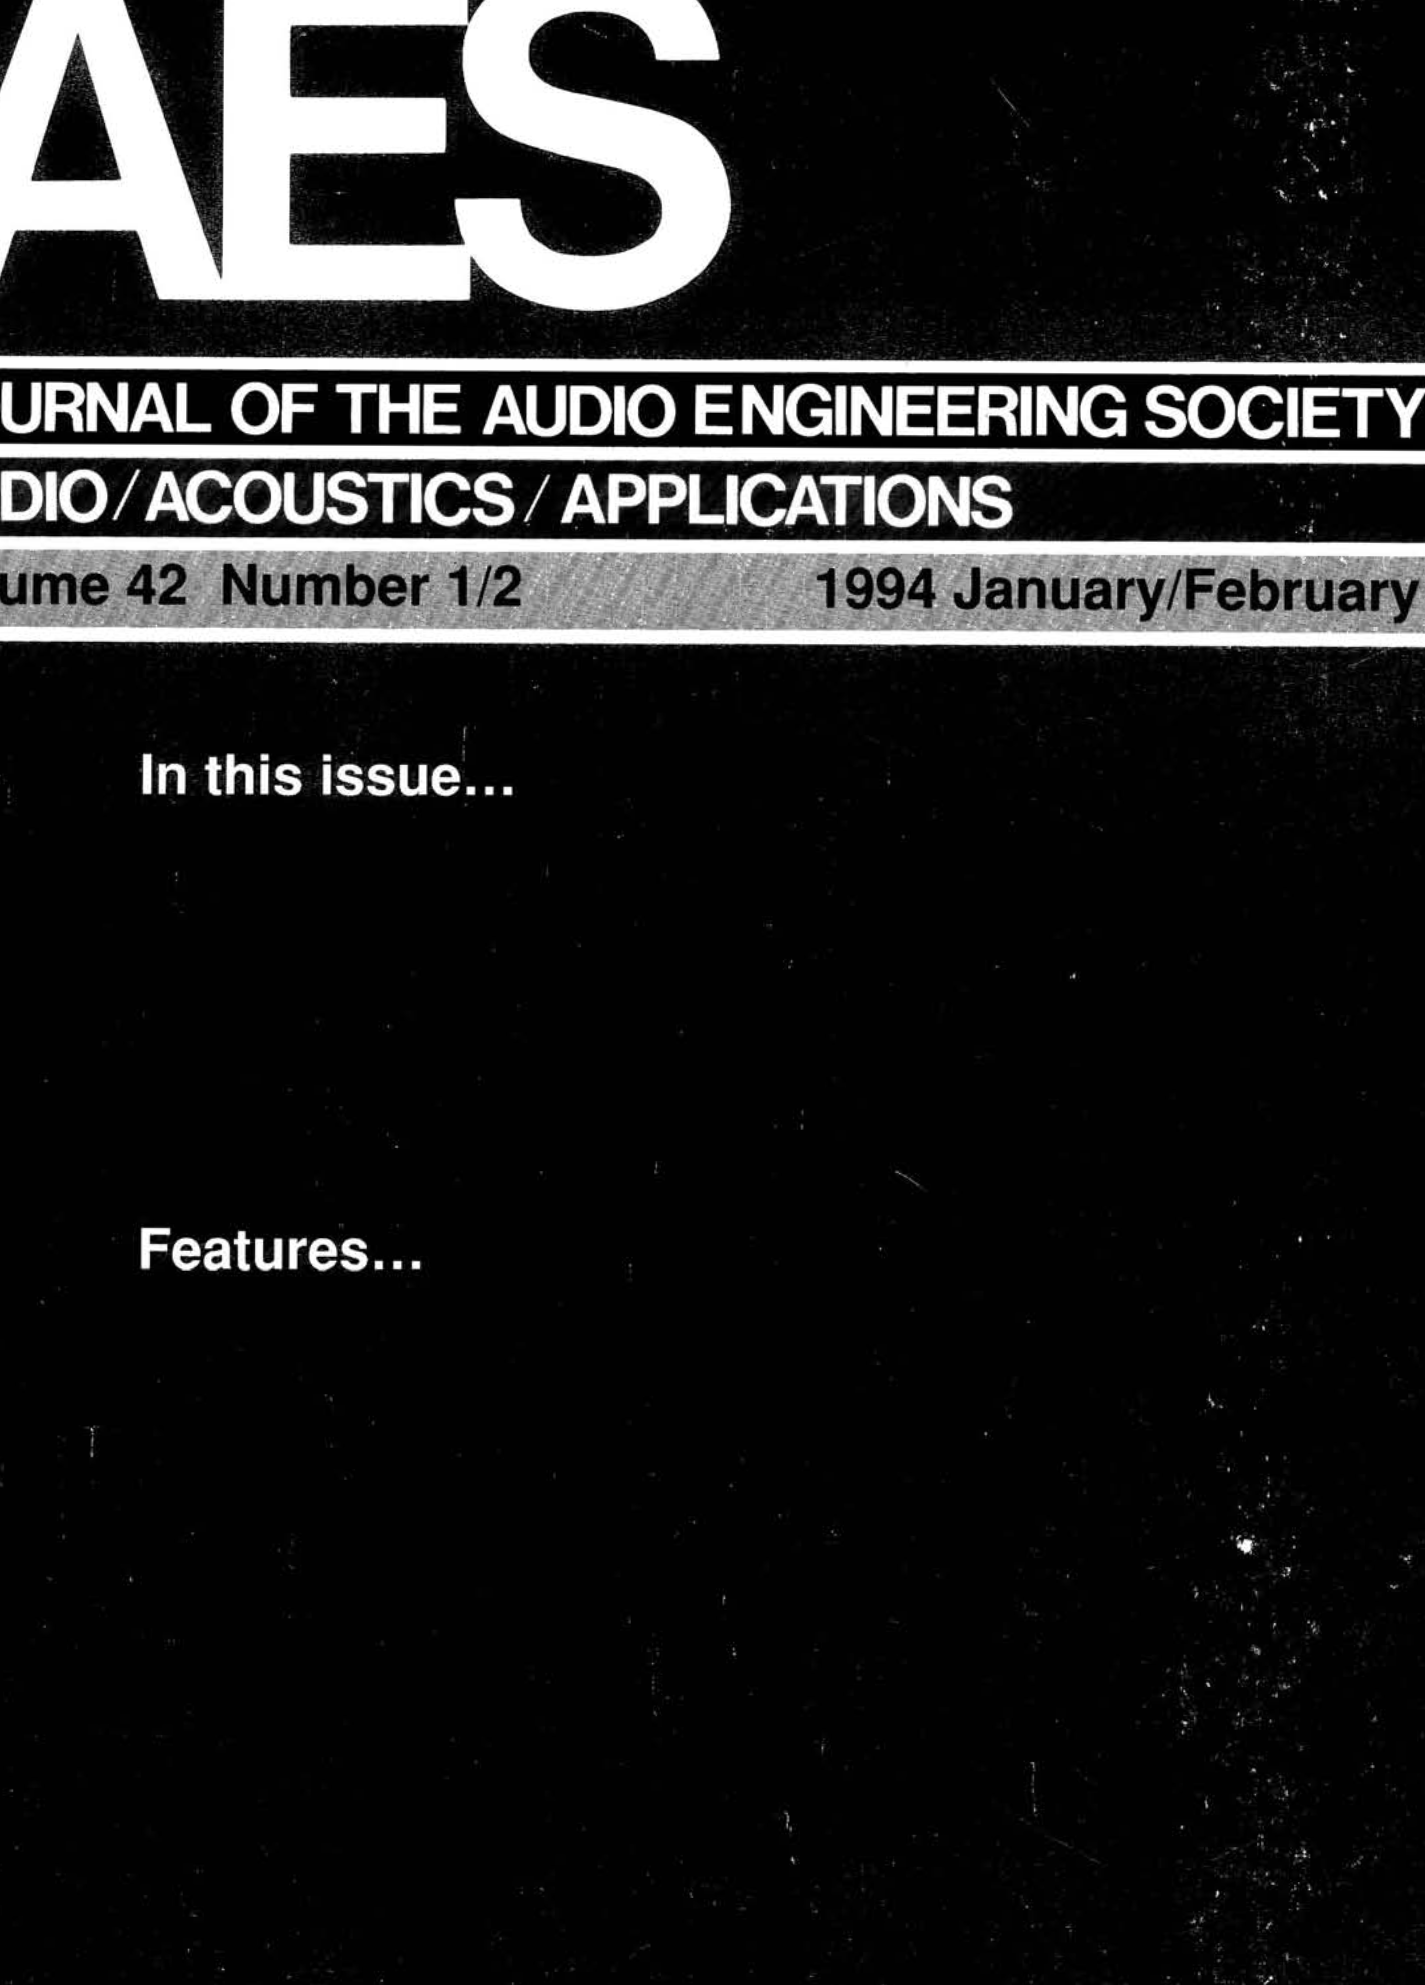 Aes e library complete journal volume 42 issue 12 pooptronica Images